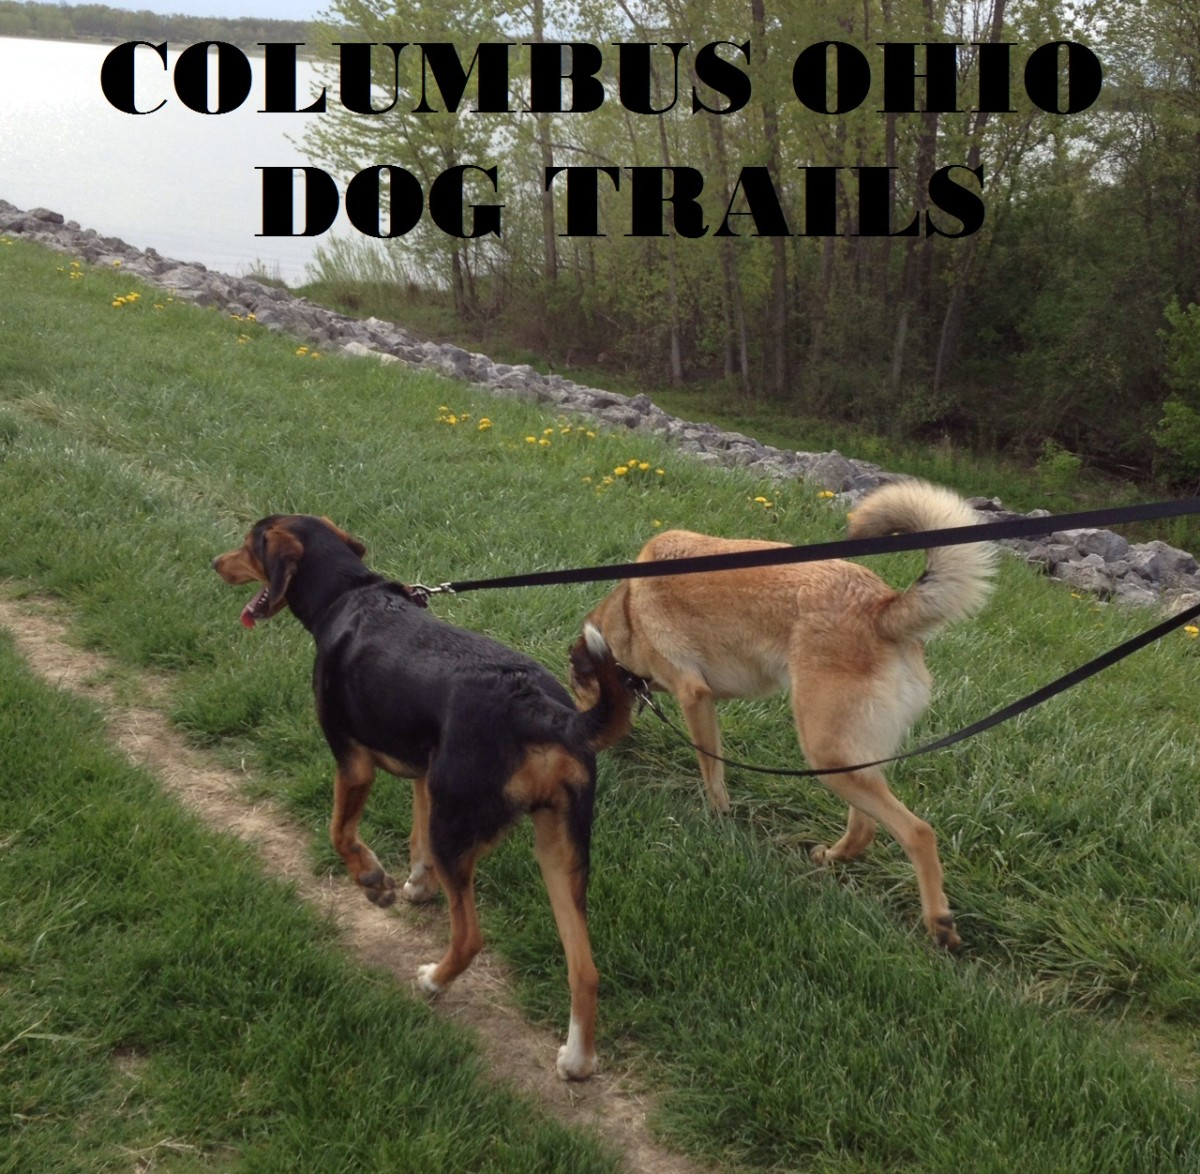 Five great dog trails near Columbus Ohio.